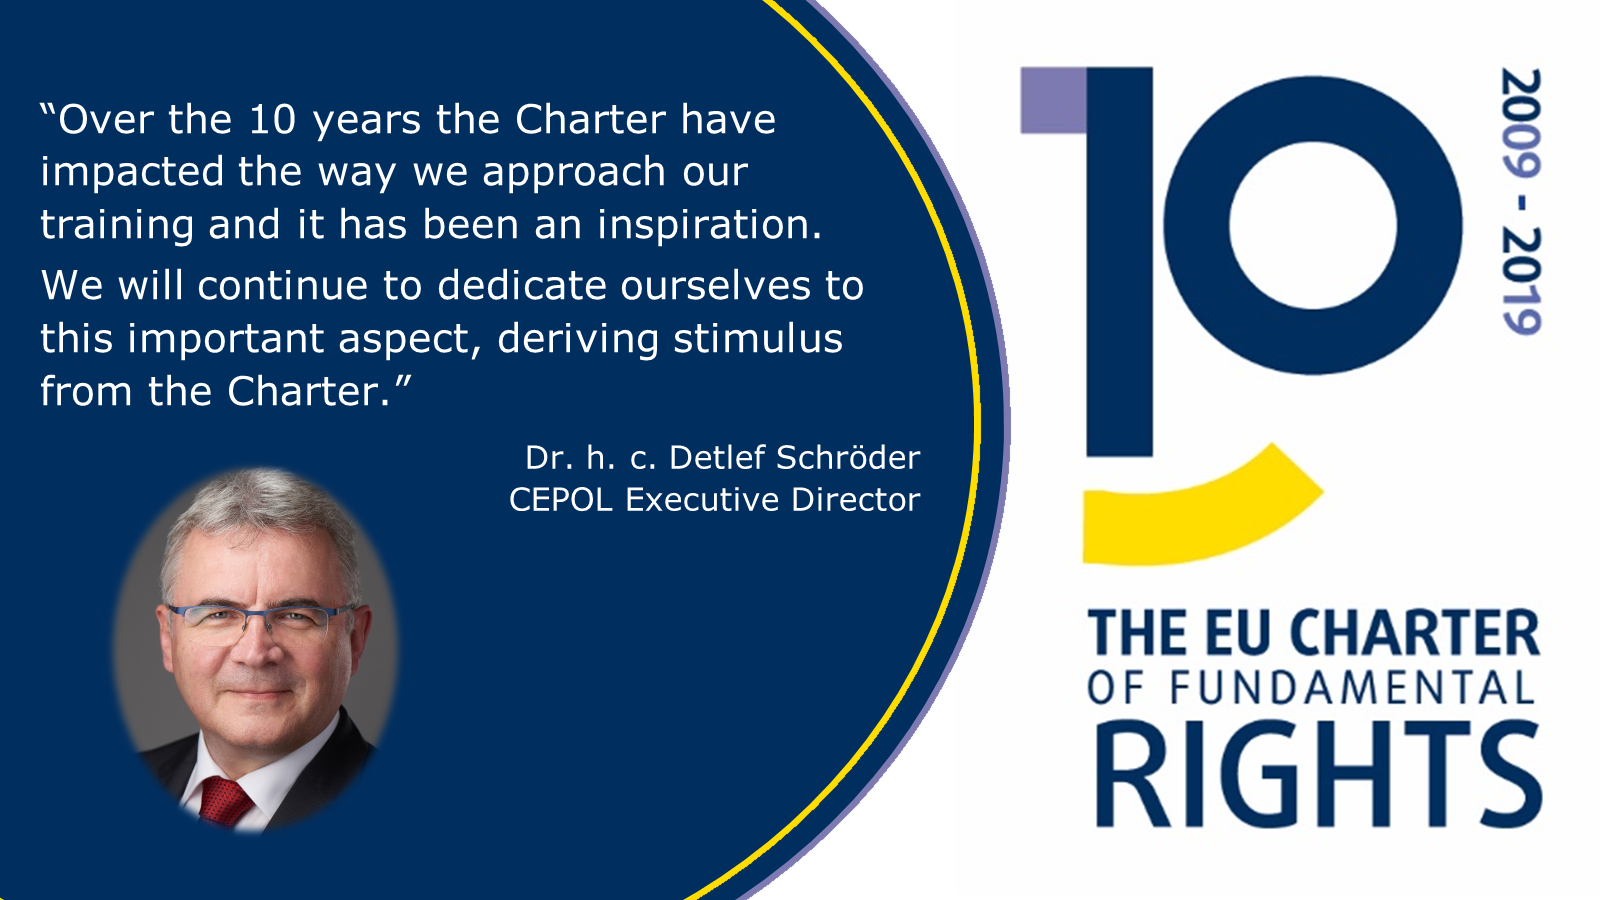 charter, 10 years, anniversary, fundamental rights, CEPOL ED